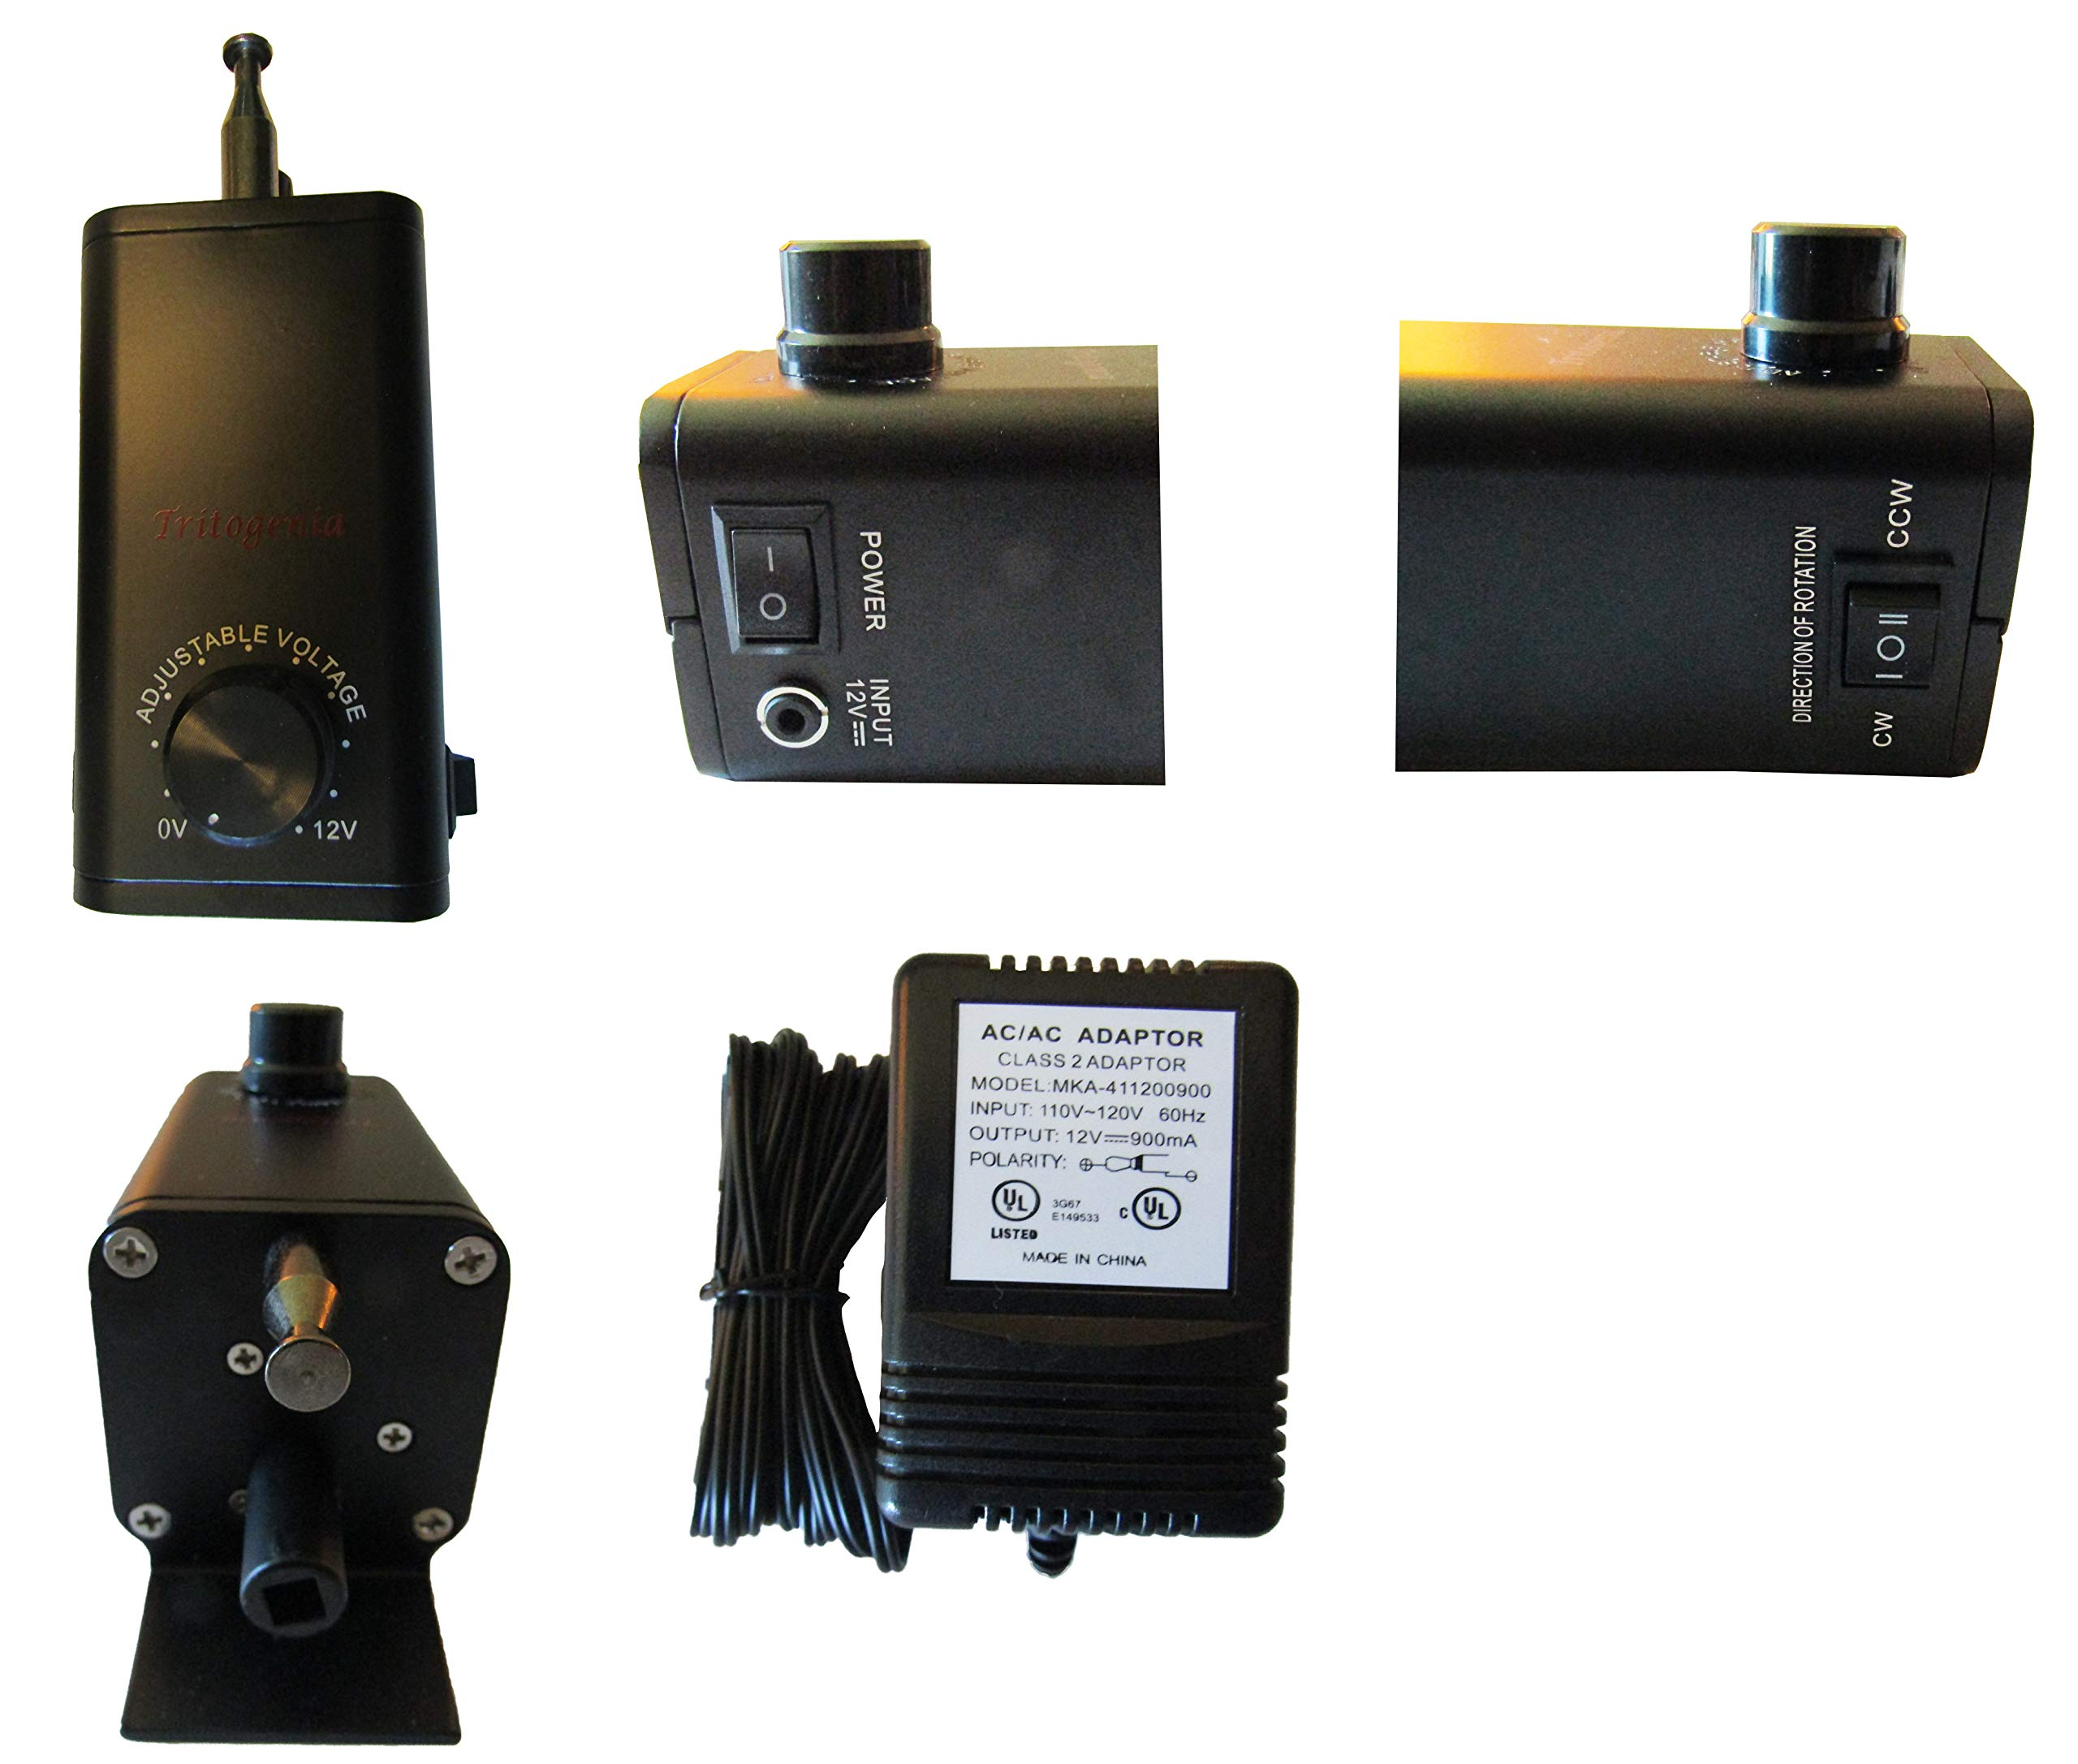 Tritogenia New Variable Speed Rotisserie Motor 0 to 65 RPM for Cyprus Grill - Without Battery Cable